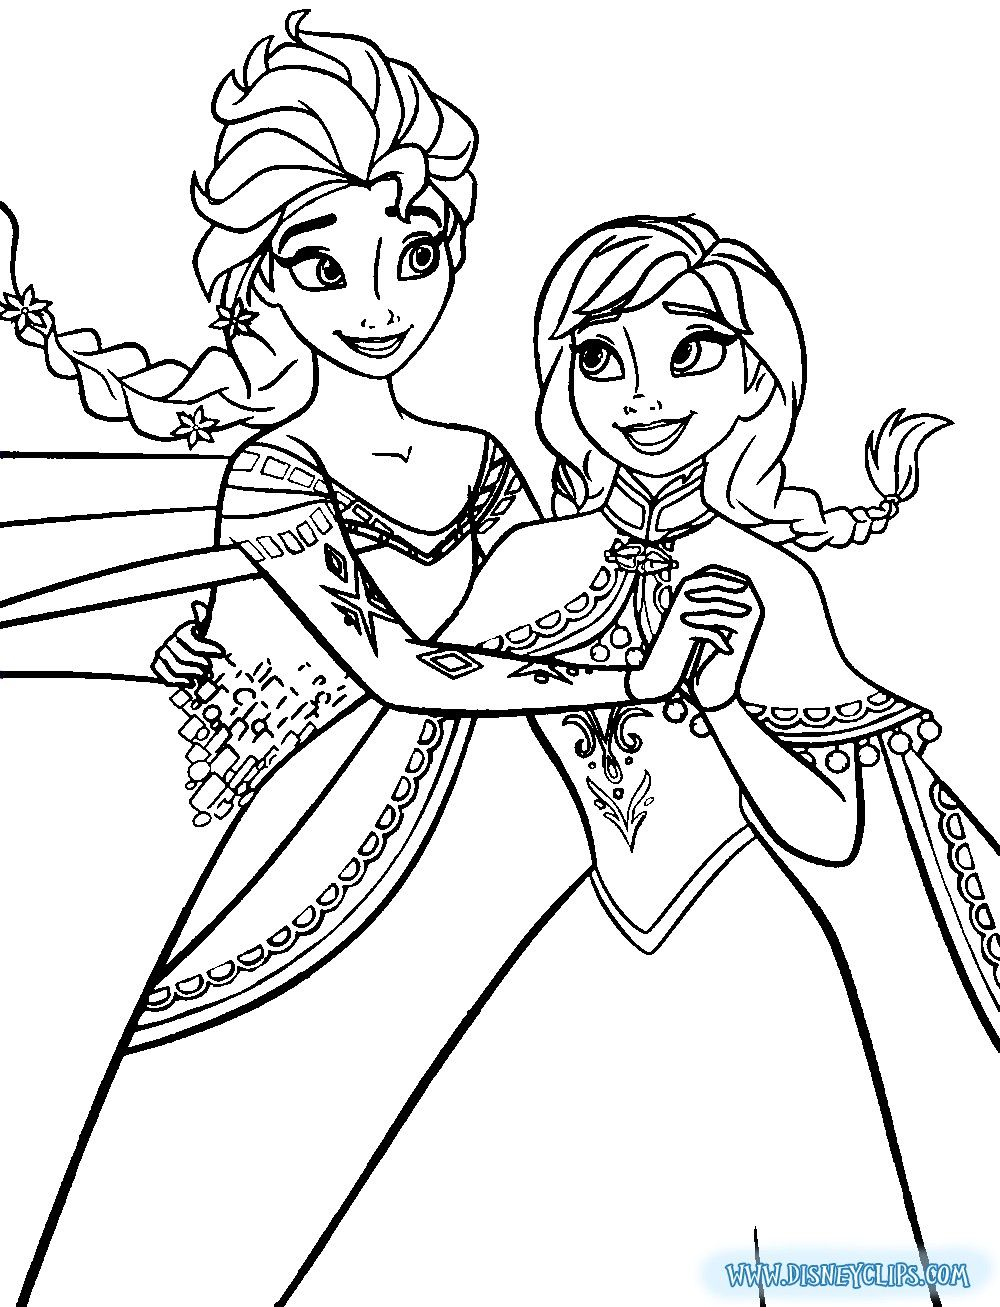 Coloring Pages Princess Elsa Through The Thousand Photos Online With Regards To Col Elsa Coloring Pages Disney Princess Coloring Pages Cartoon Coloring Pages